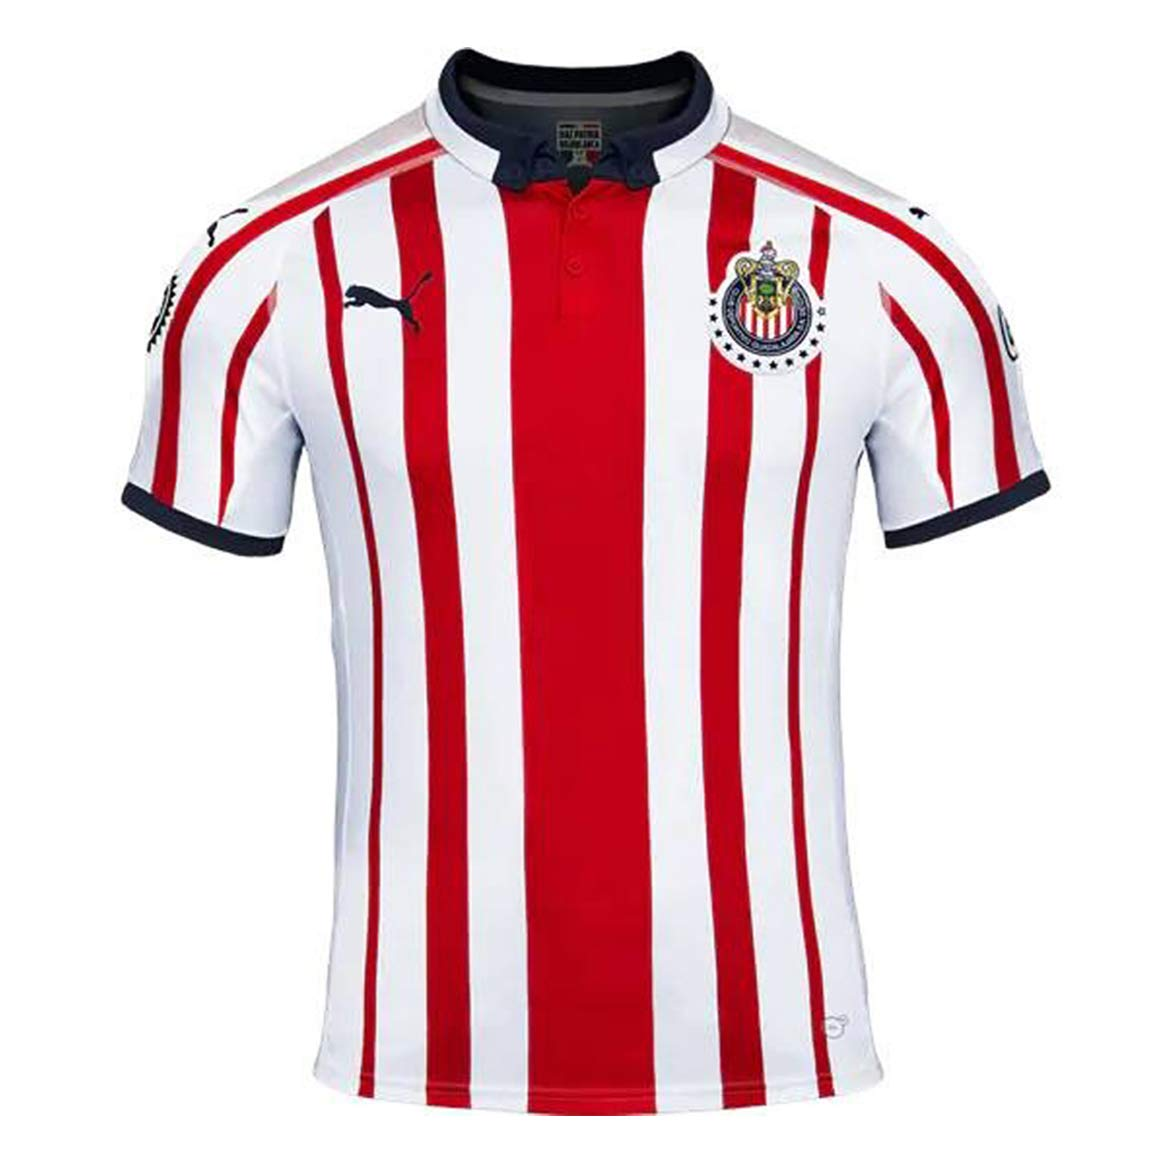 020b09ed6 Amazon.com  PUMA Chivas Home Kids (Boys) Soccer Jersey 2018-19  Clothing